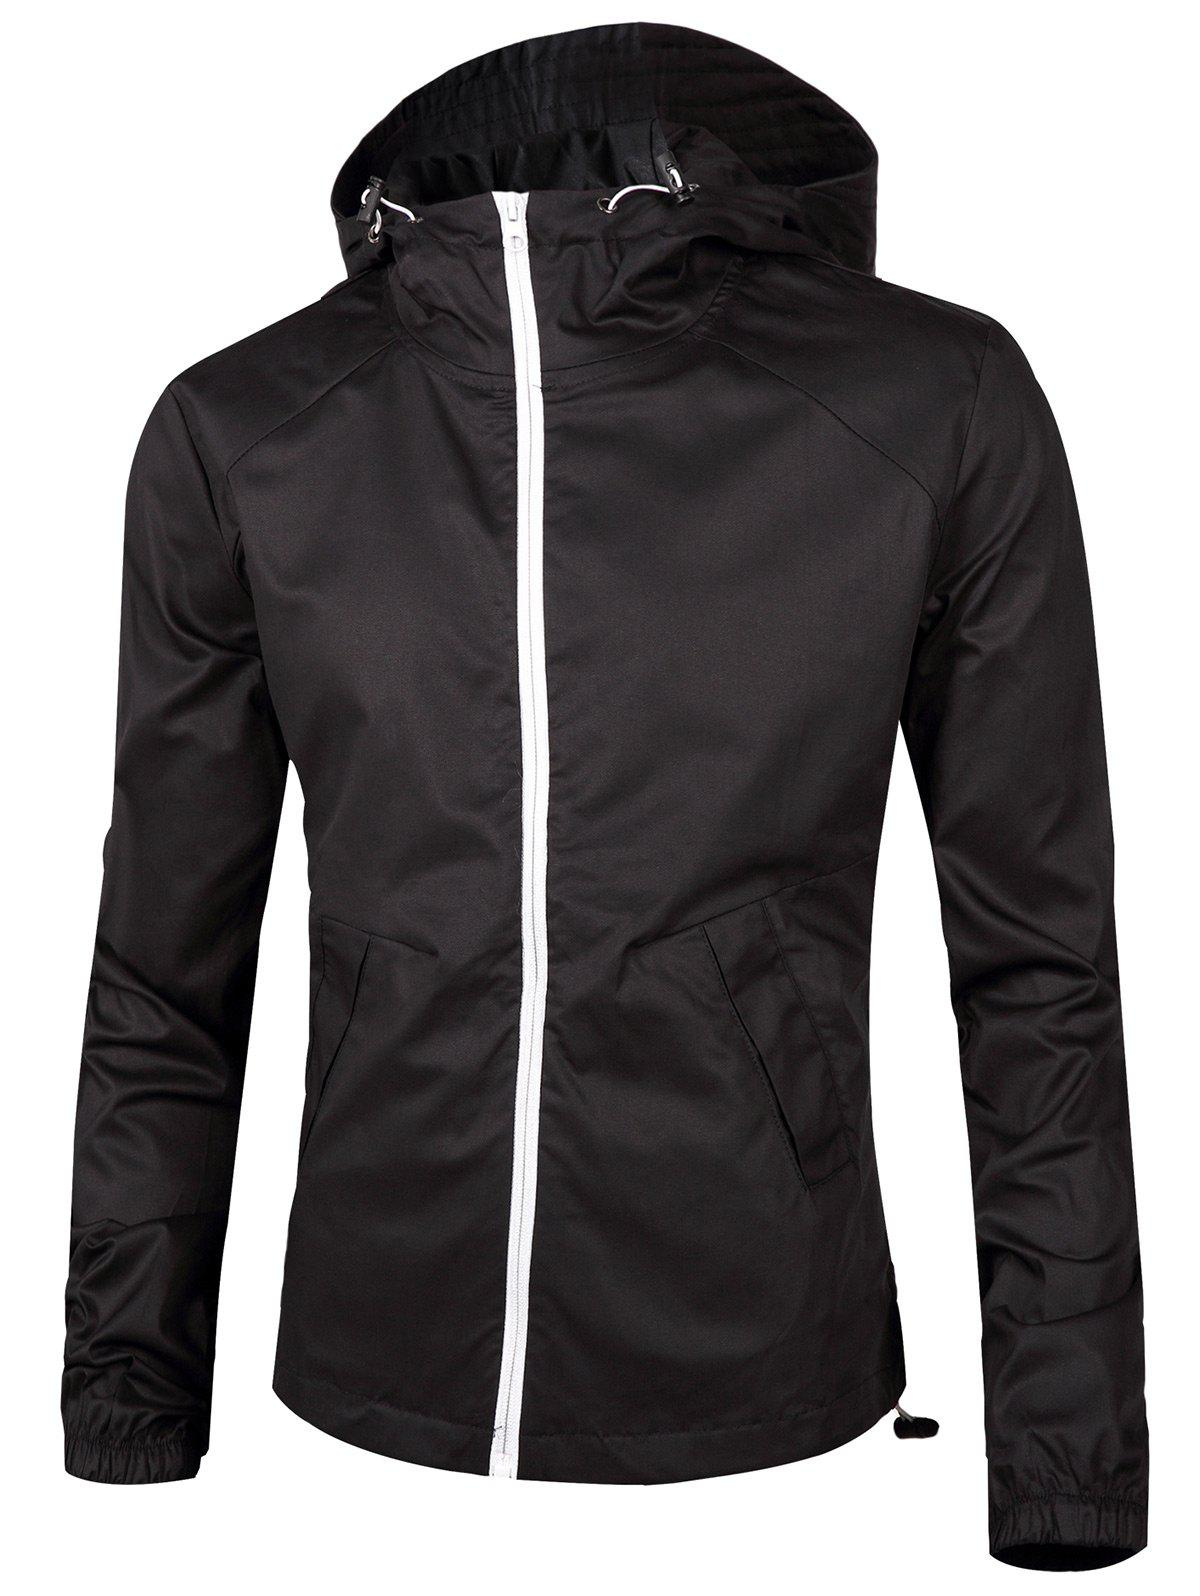 Retour imprimé graphique Zip Up Windbreaker Jacket Noir XL